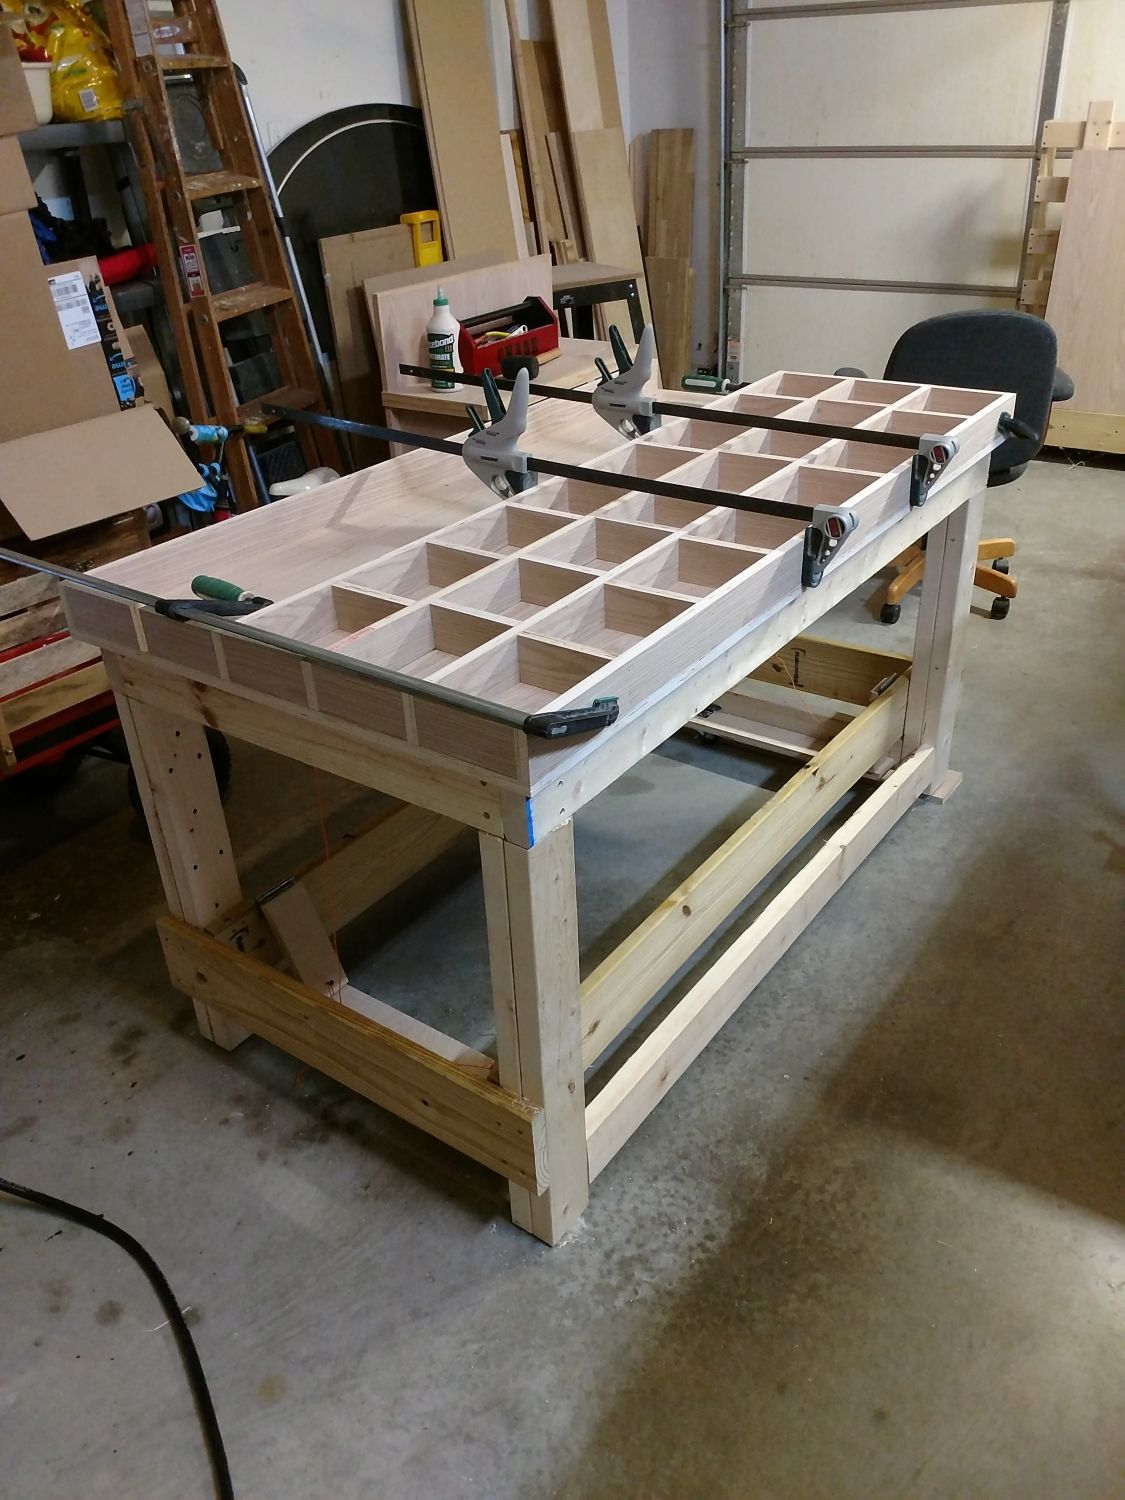 Torsion Box Workbench For My Woodshop What I Did With